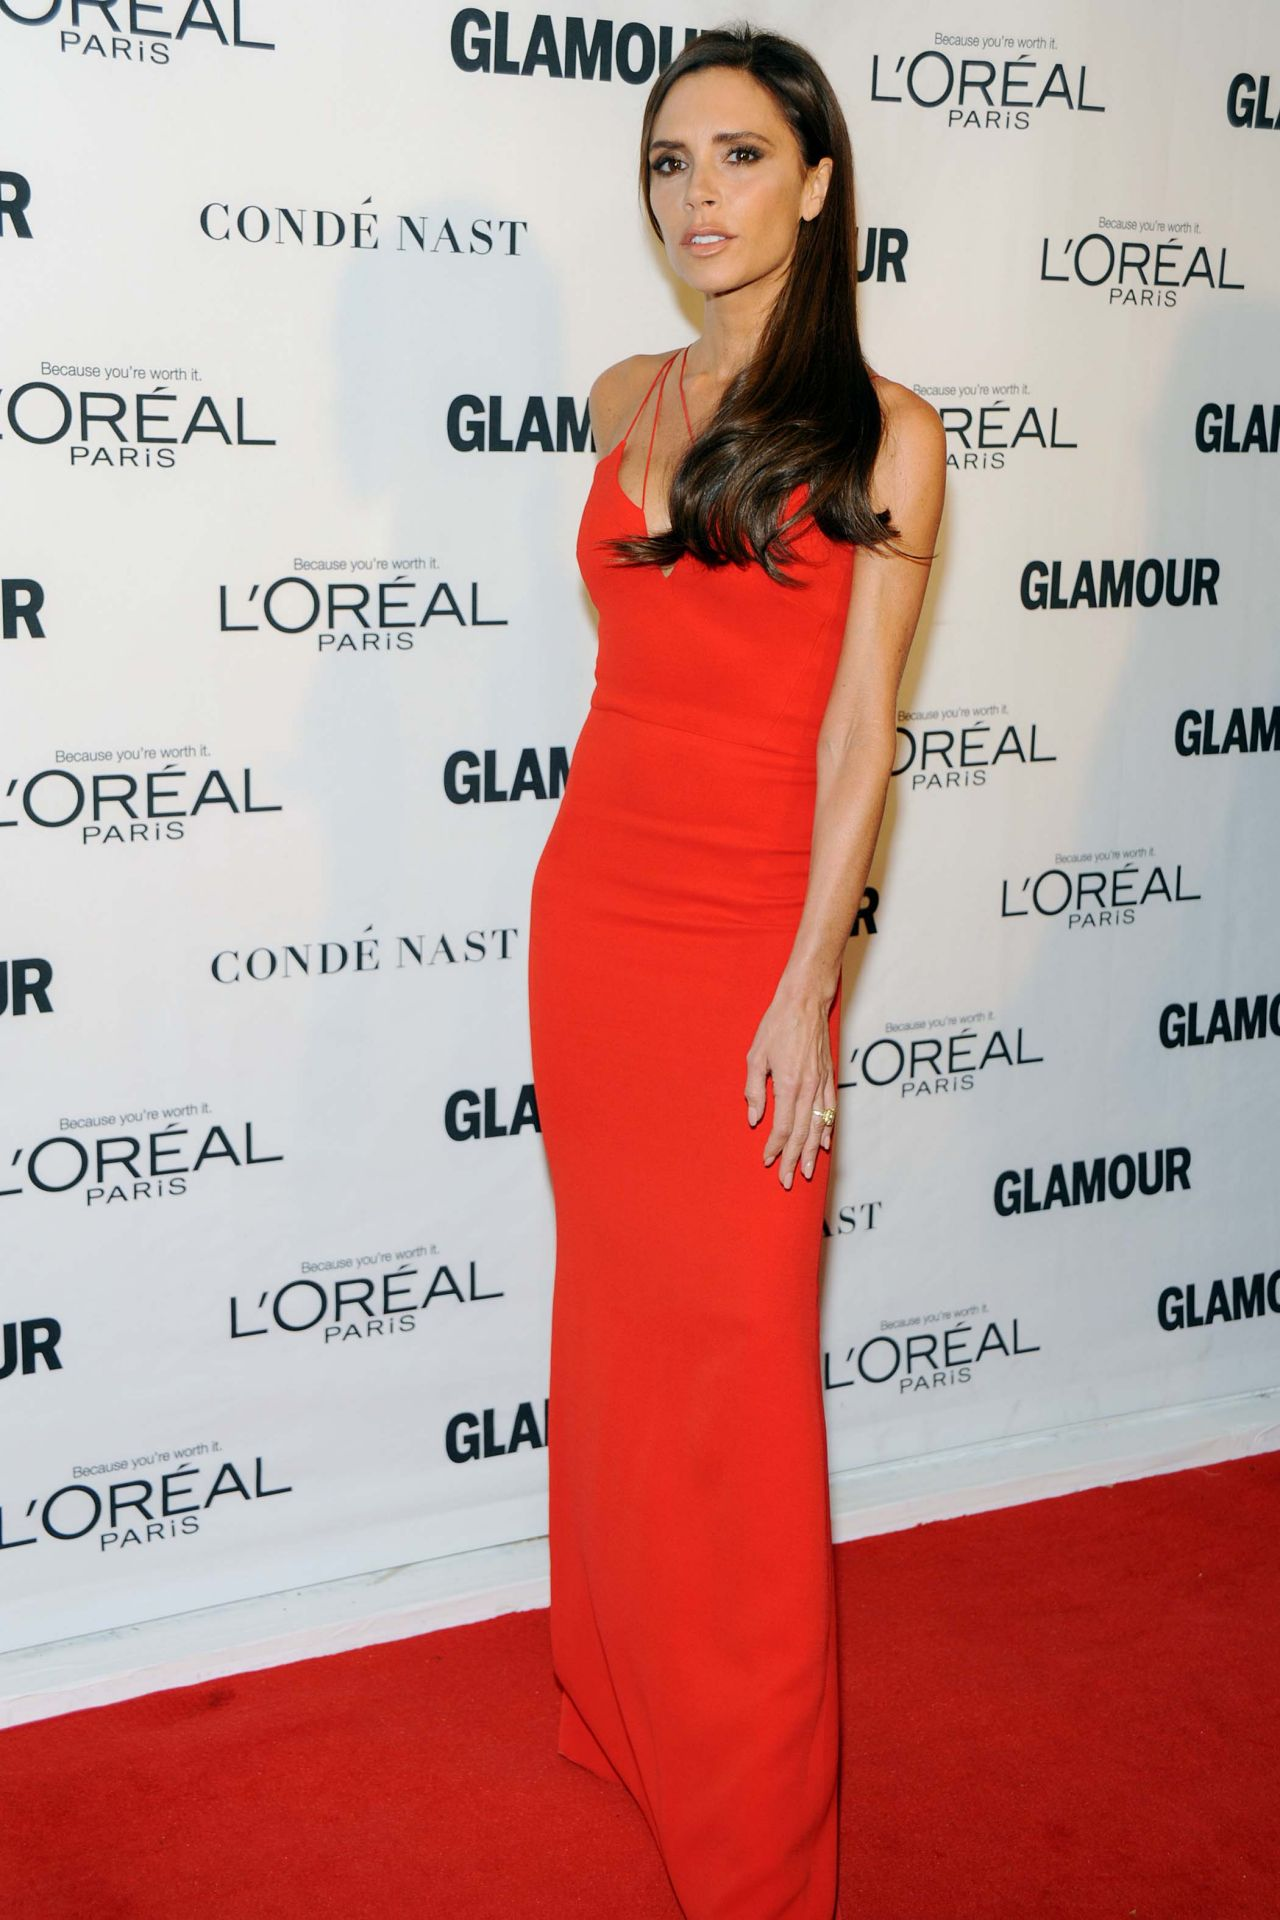 Victoria Beckham 2015 Glamour Women Of The Year Awards